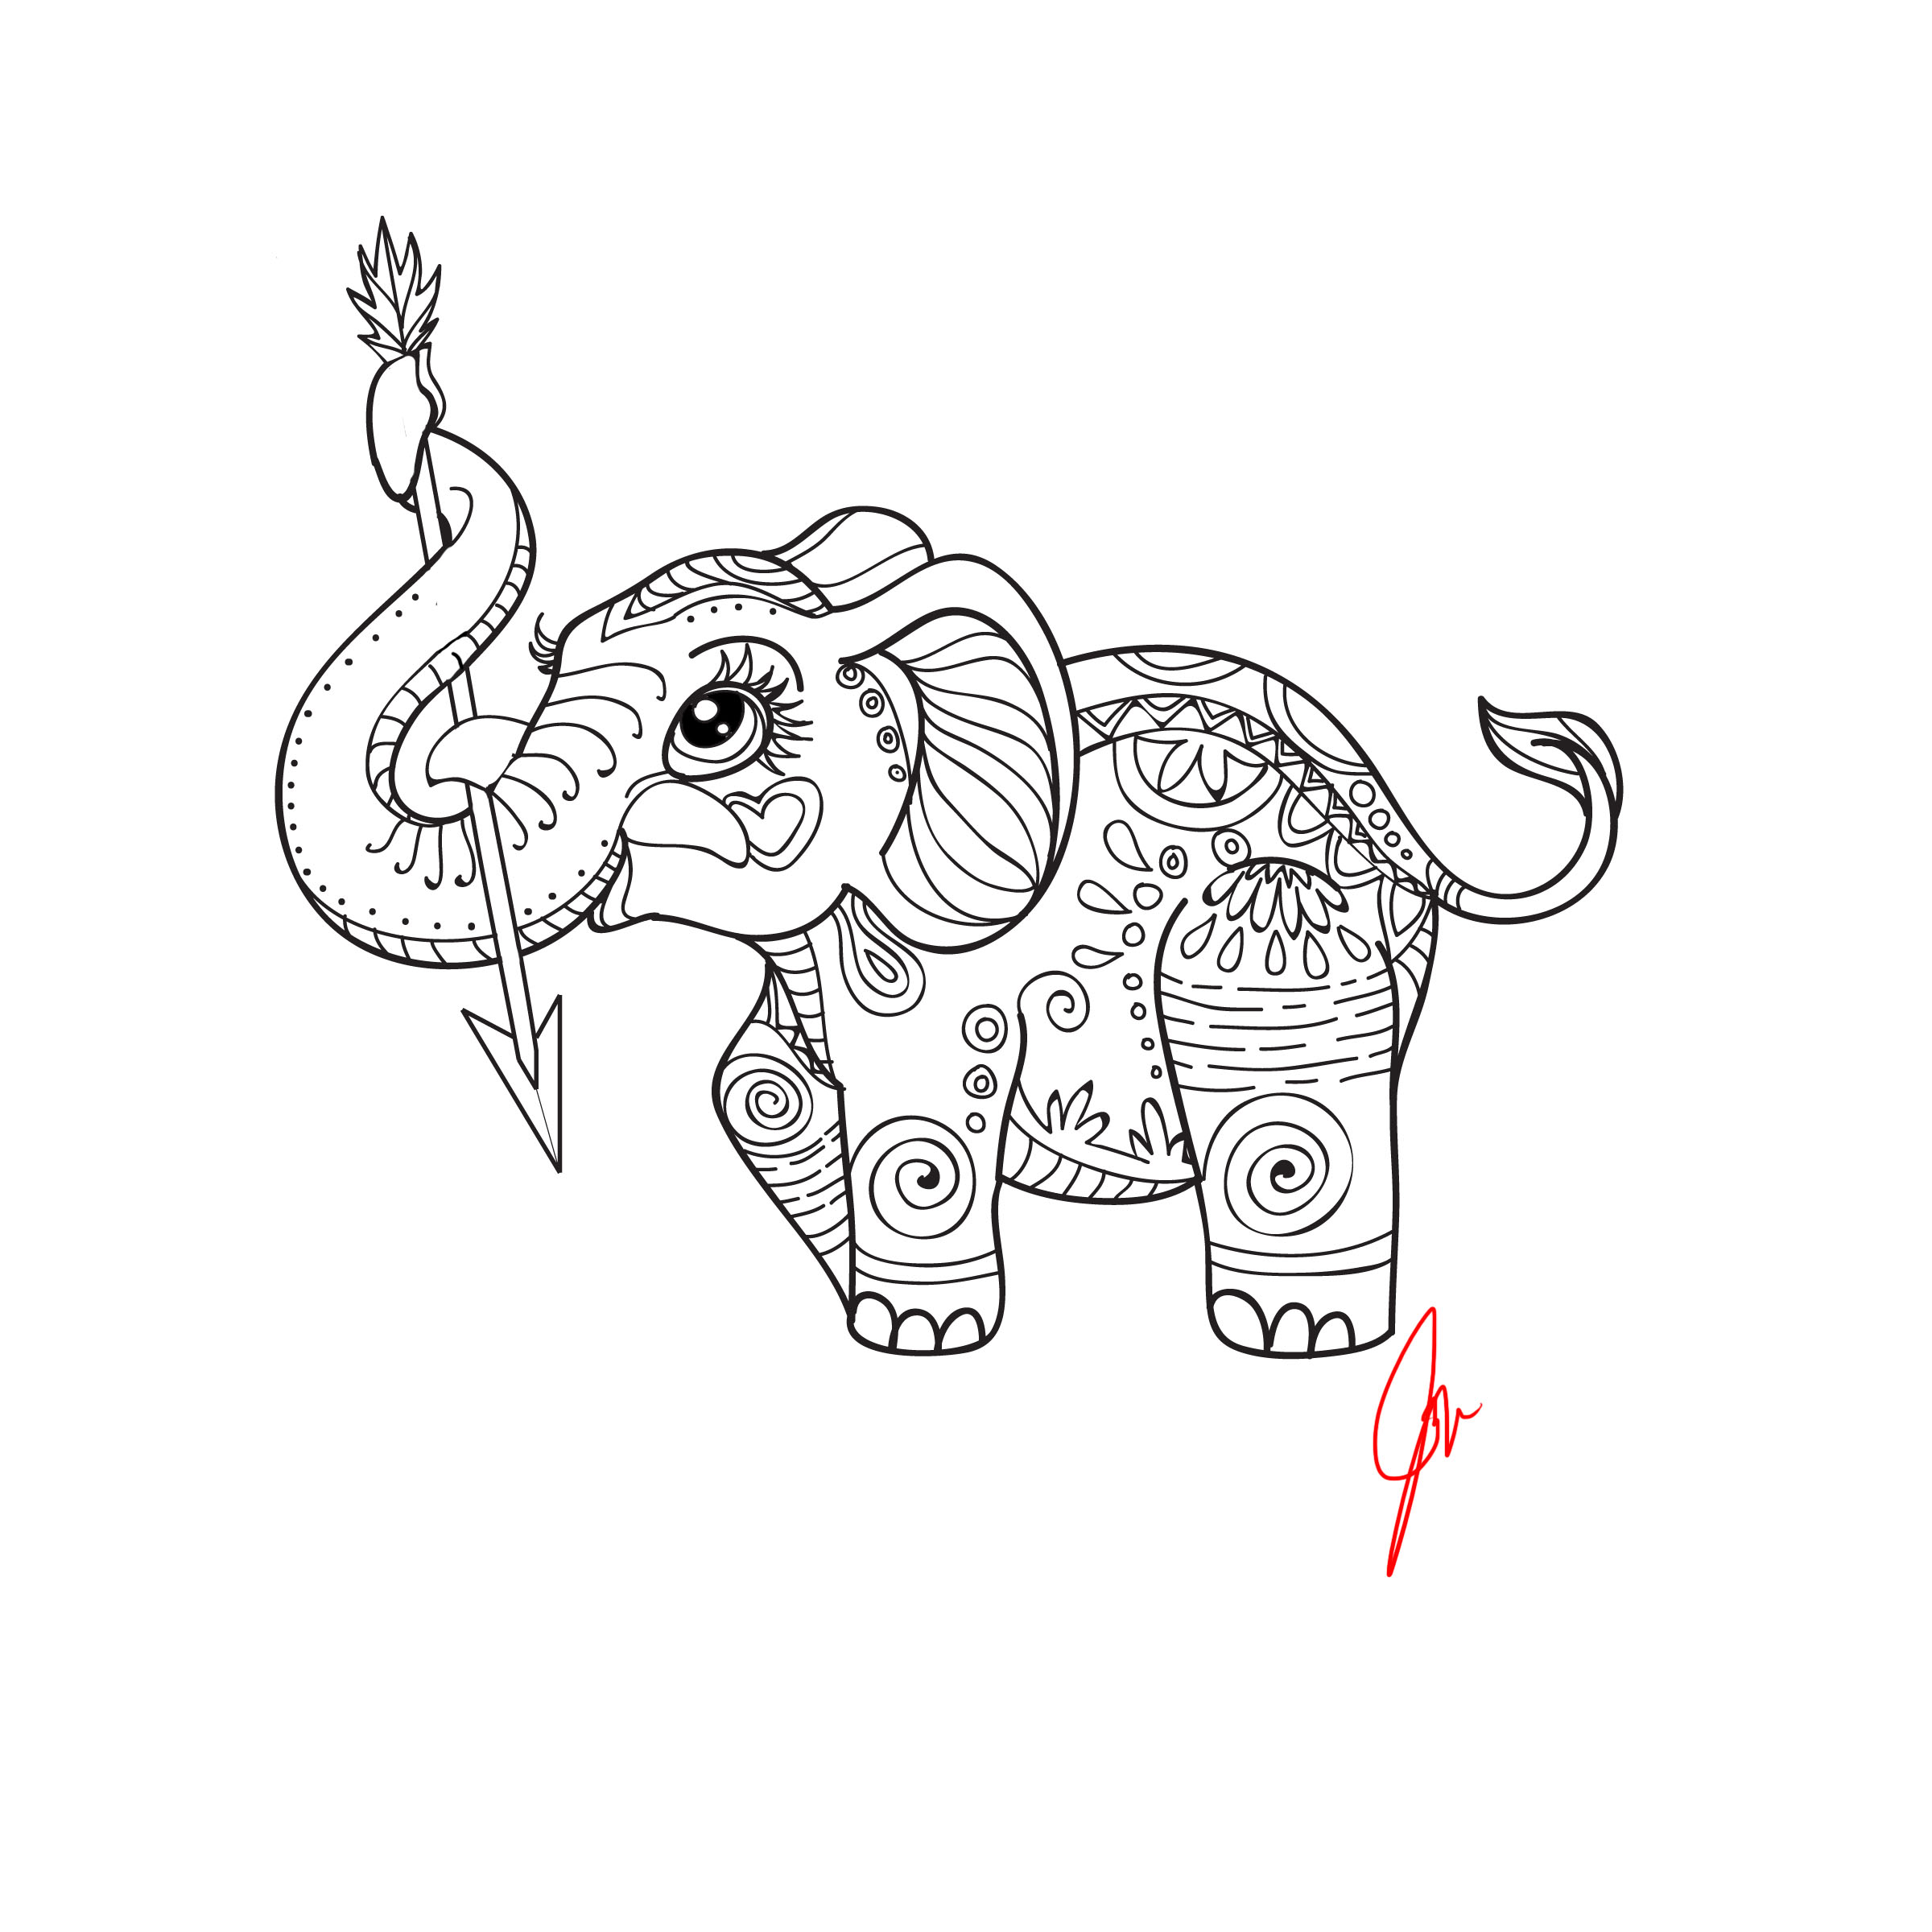 2400x2400 Simple Elephant Adult Coloring Book Elephant Adult Coloring Book